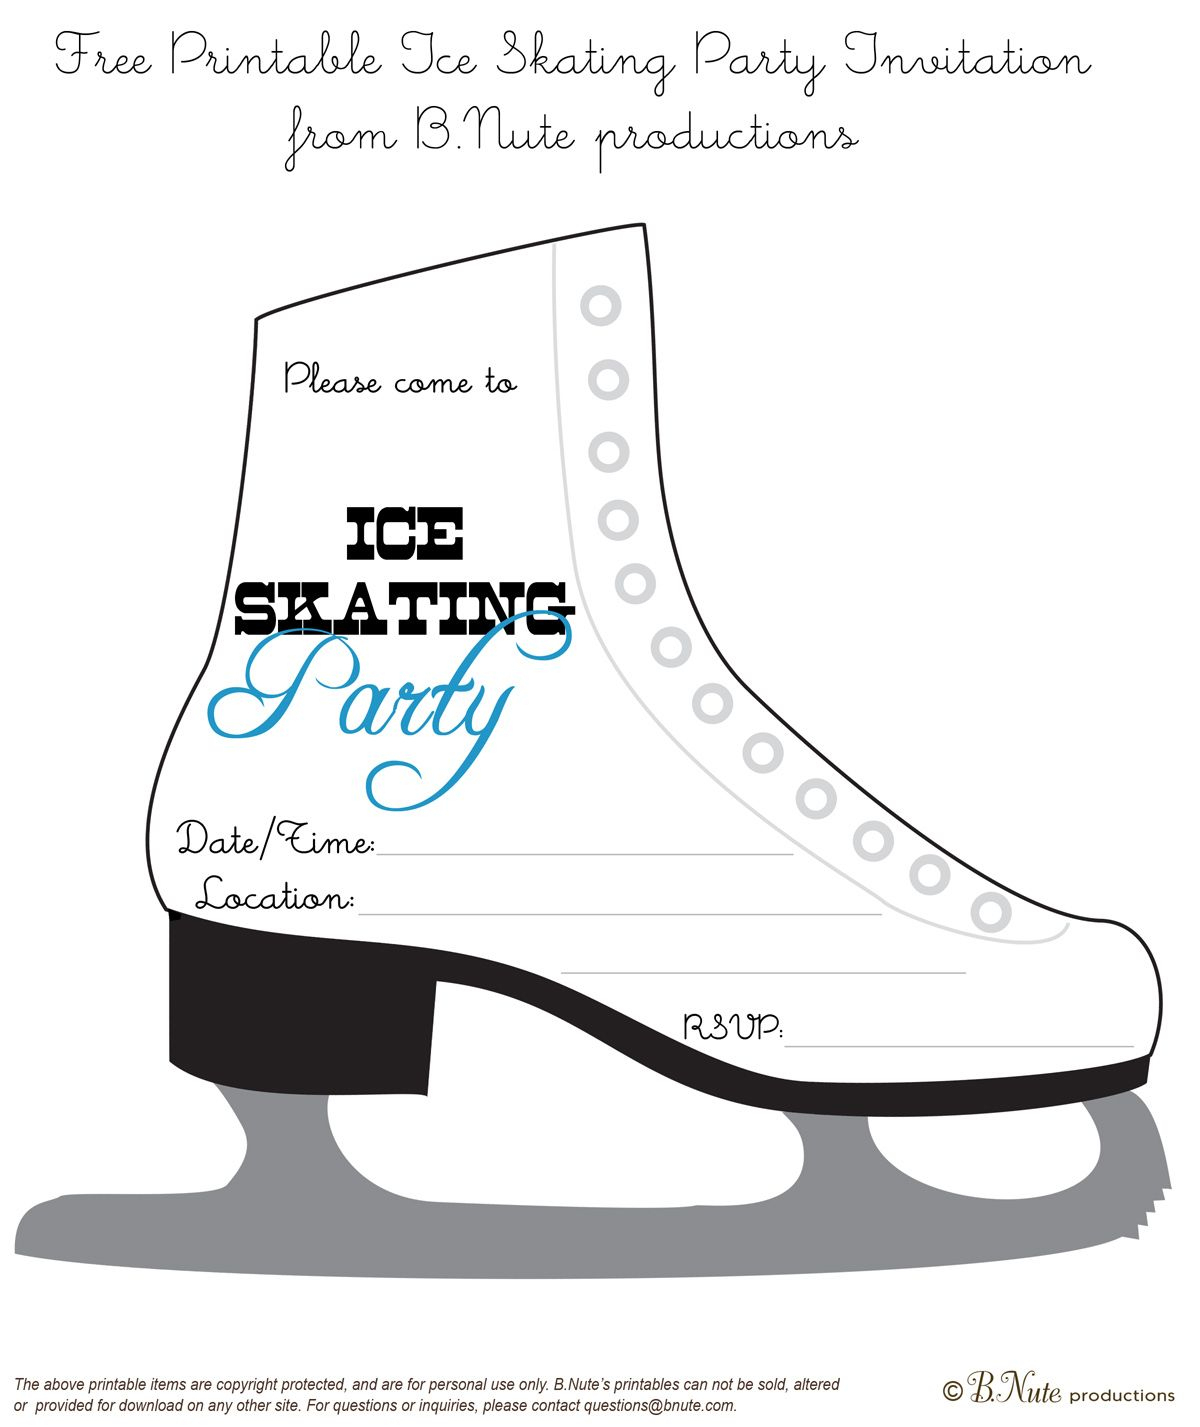 Bnute Productions: Free Printable Ice Skating Party Invitation - Free Printable Skateboard Birthday Party Invitations